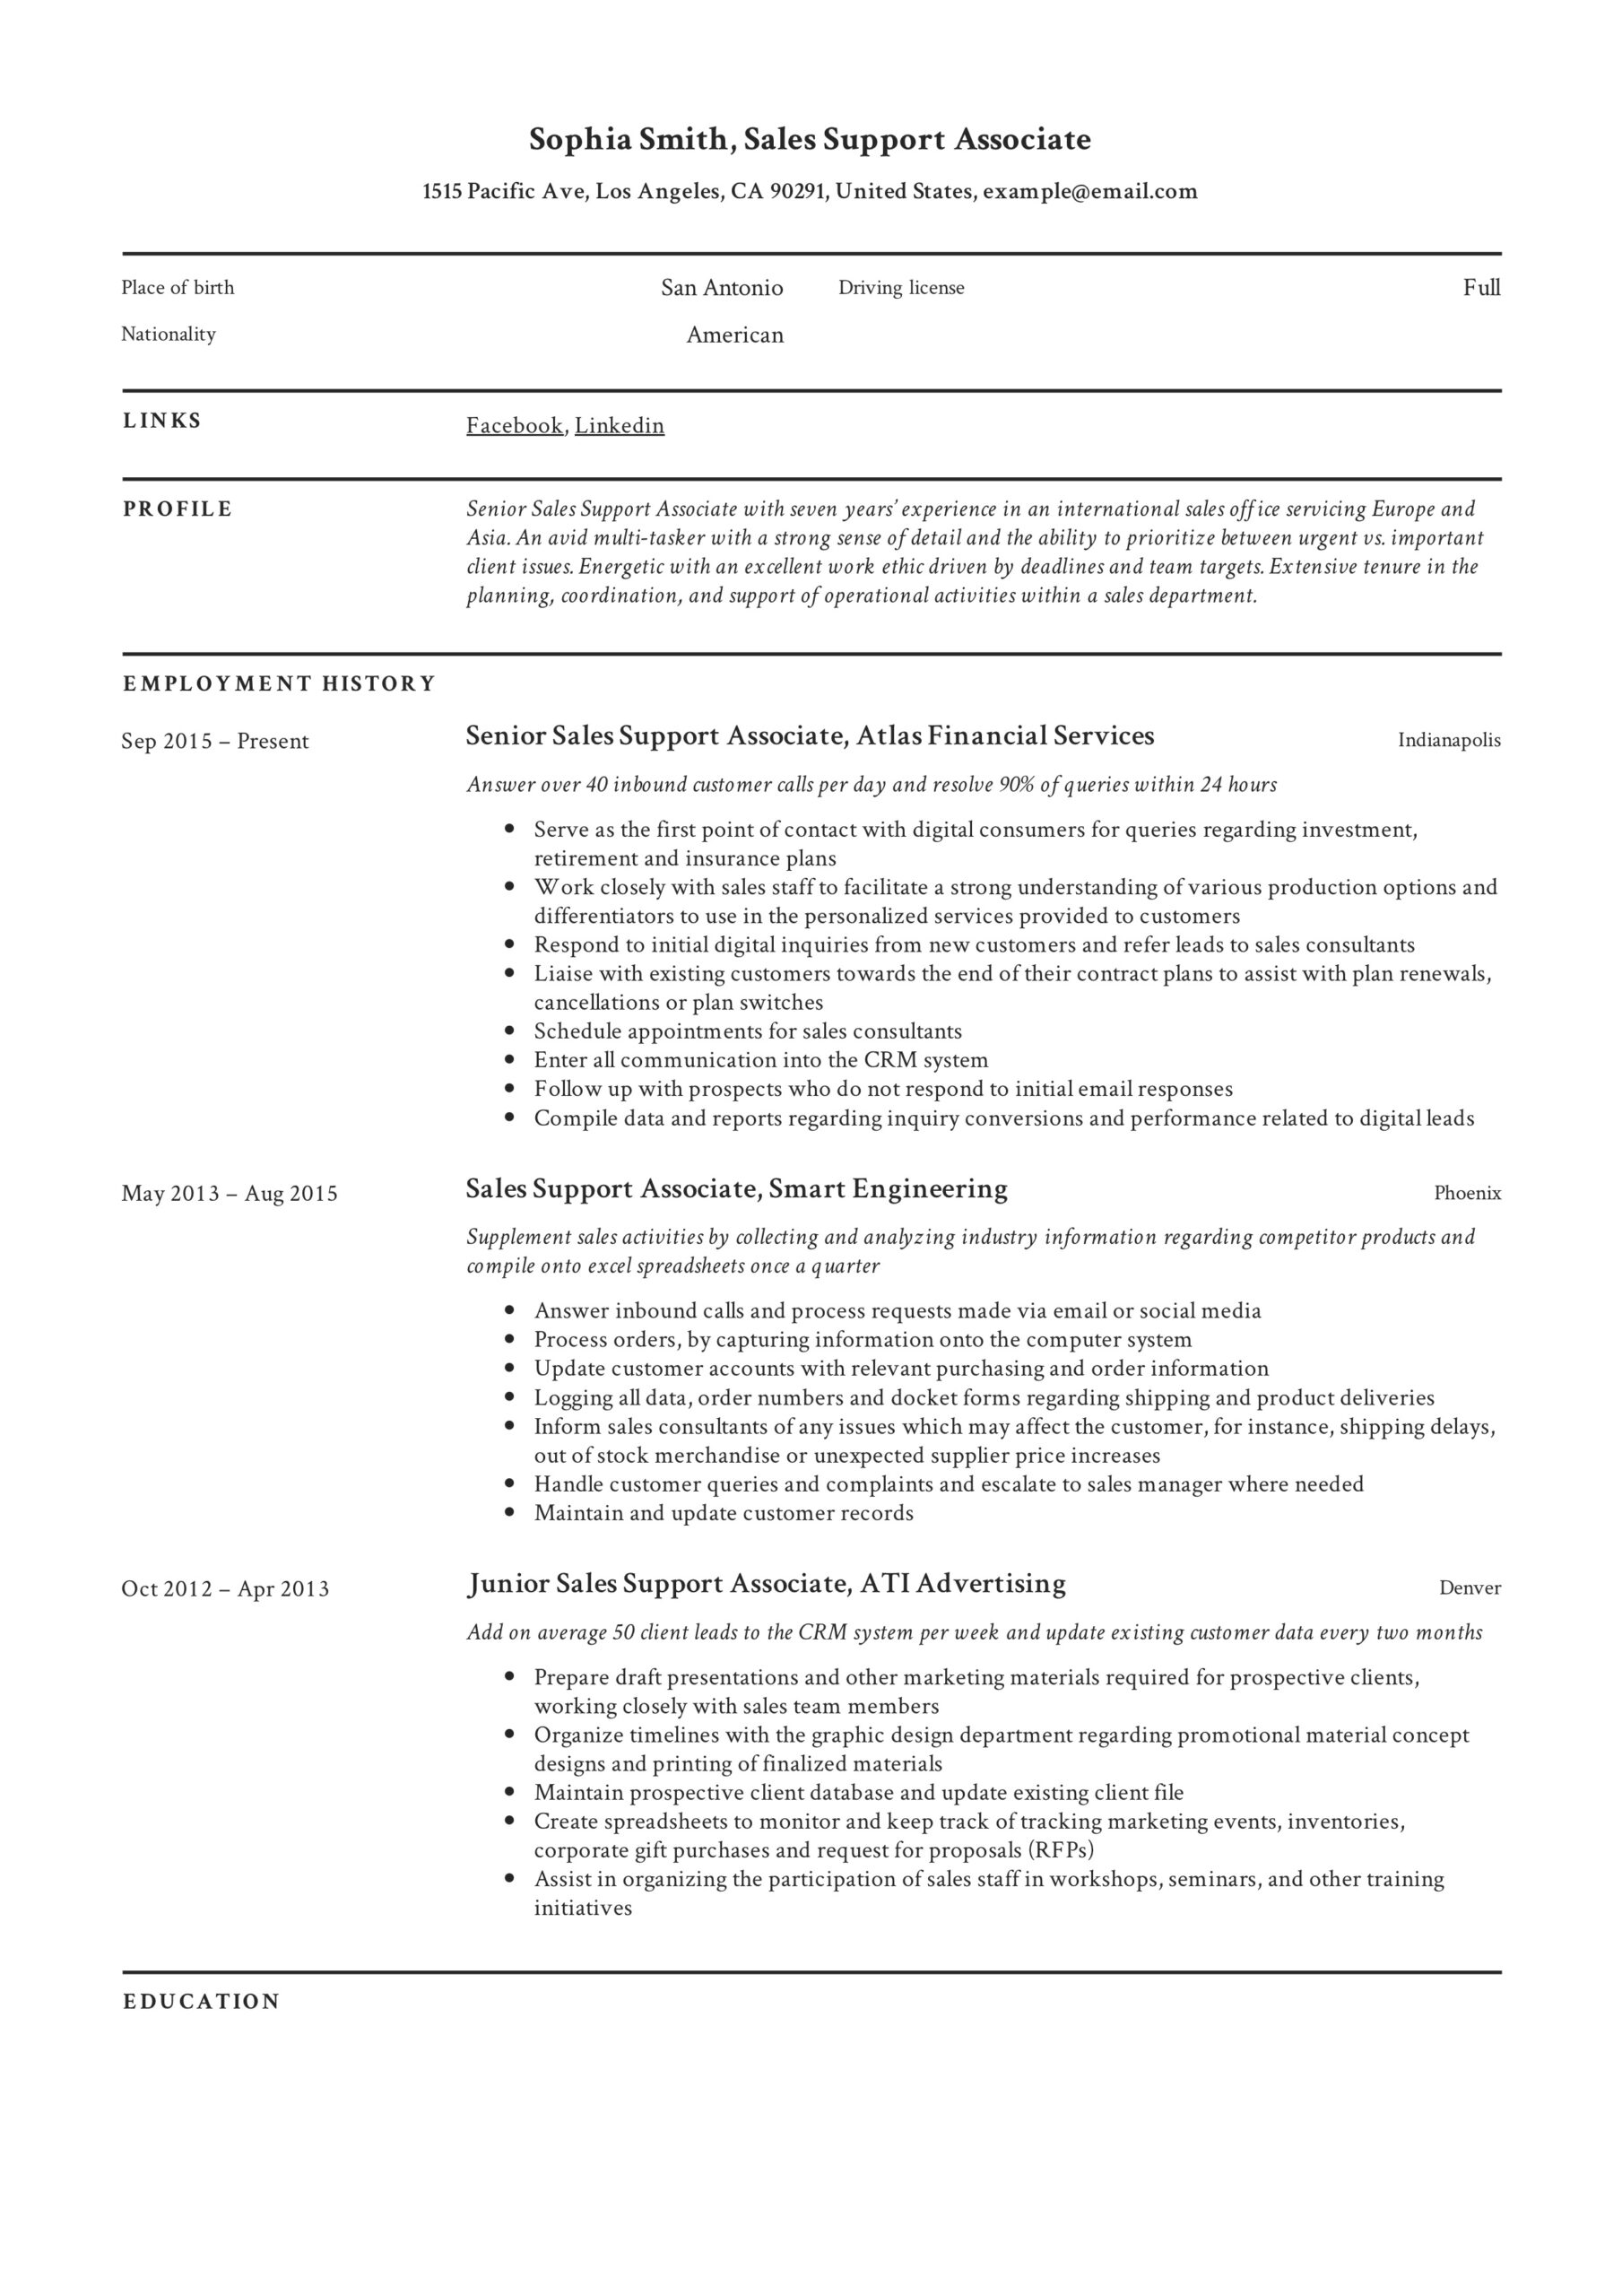 support associate resume guide examples stock job description example daycare assistant Resume Stock Associate Job Description Resume